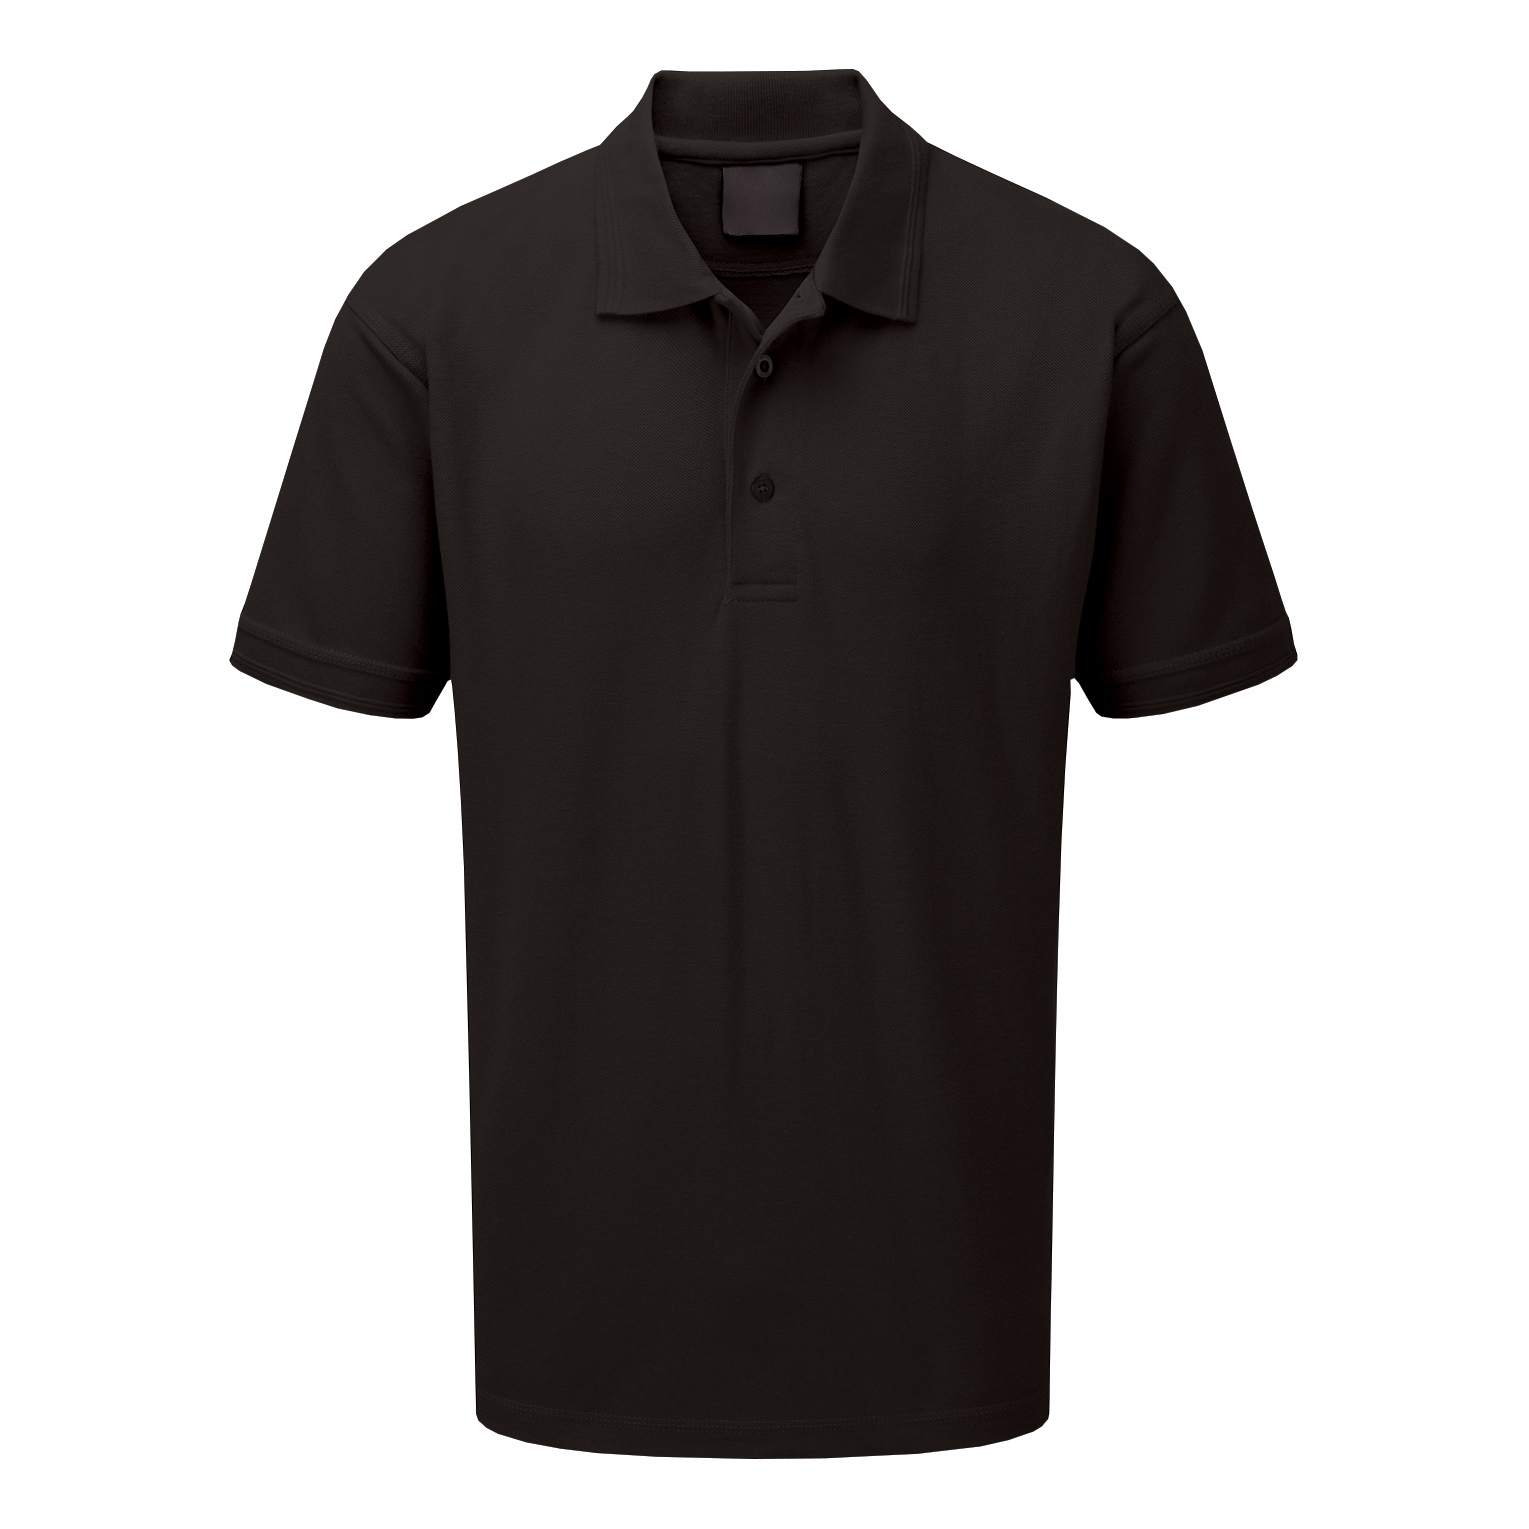 Premium Polo Shirt Triple Stitched Size 5XL Black Ref CLPKSBL5XL *Approx 3 Day Leadtime*